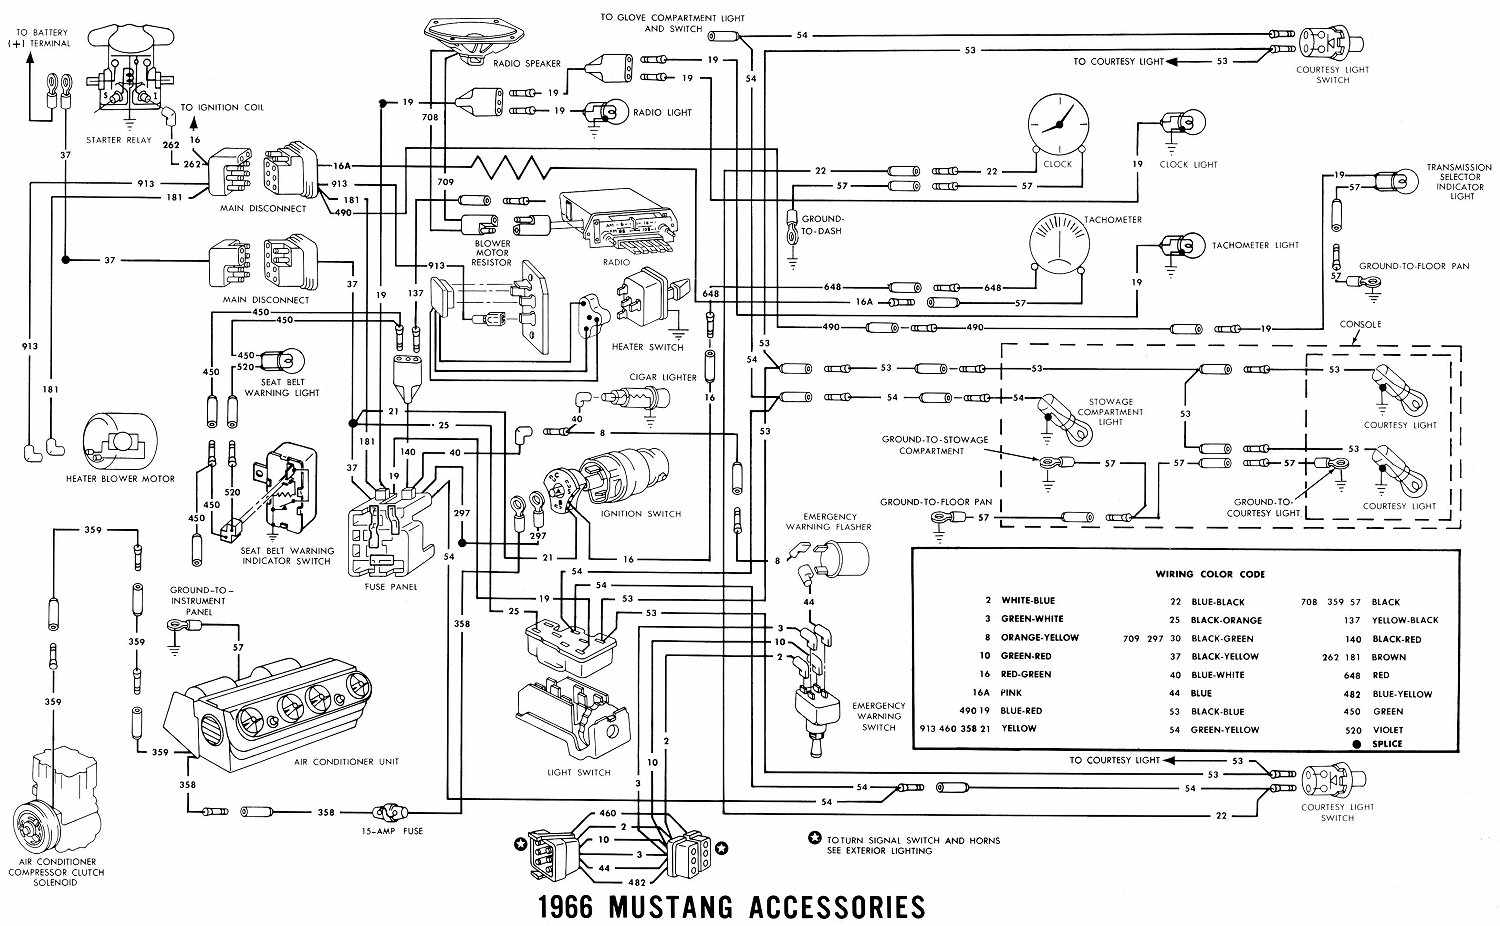 1966 Ford Mustang Accessories Electrical Wiring Diagrams | Schematic Wiring Diagrams Solutions